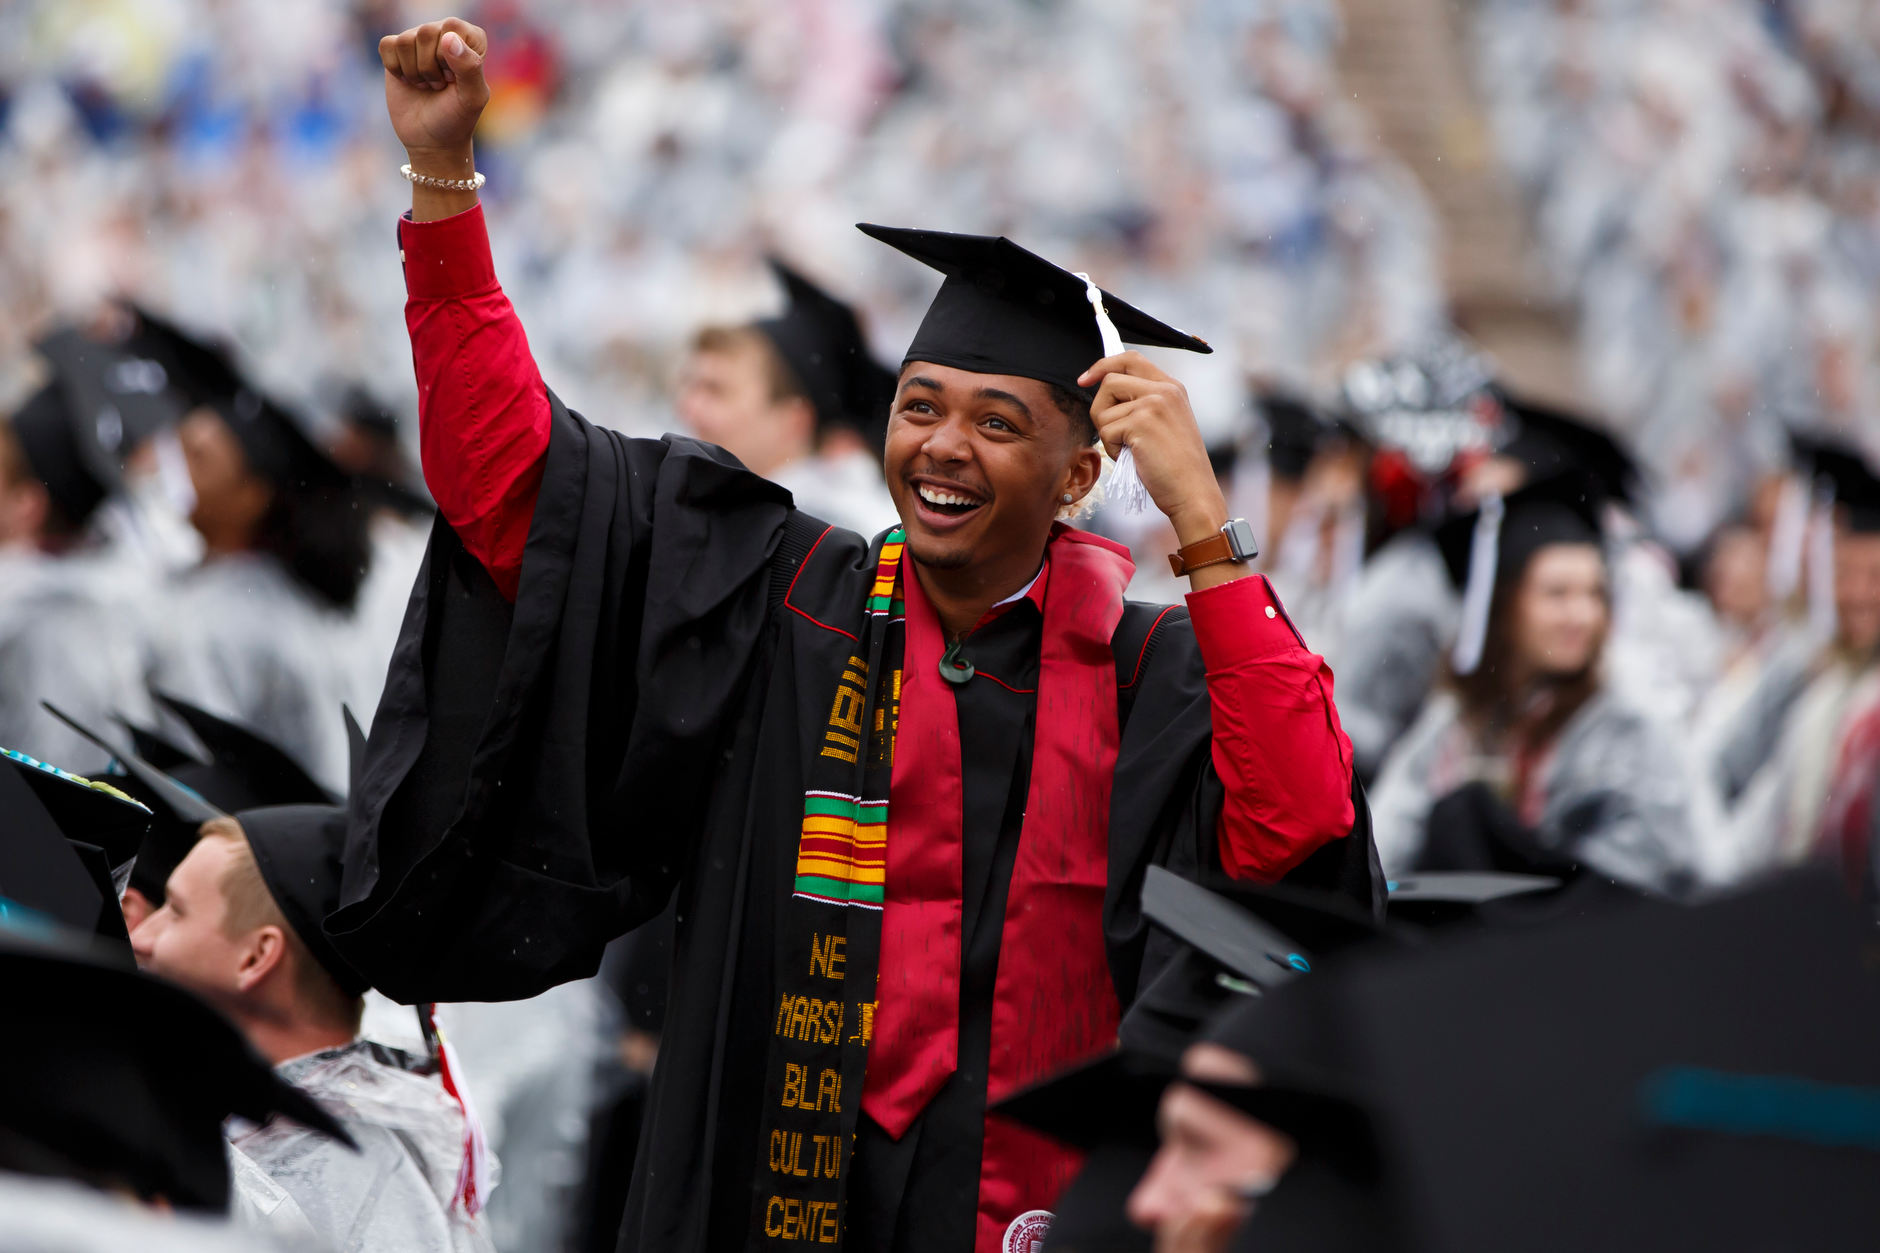 A graduate waves to friends in the audience during the Indiana University Bloomington Undergraduate Commencement at Memorial Stadium on Saturday, May 4, 2019. (James Brosher/Indiana University)